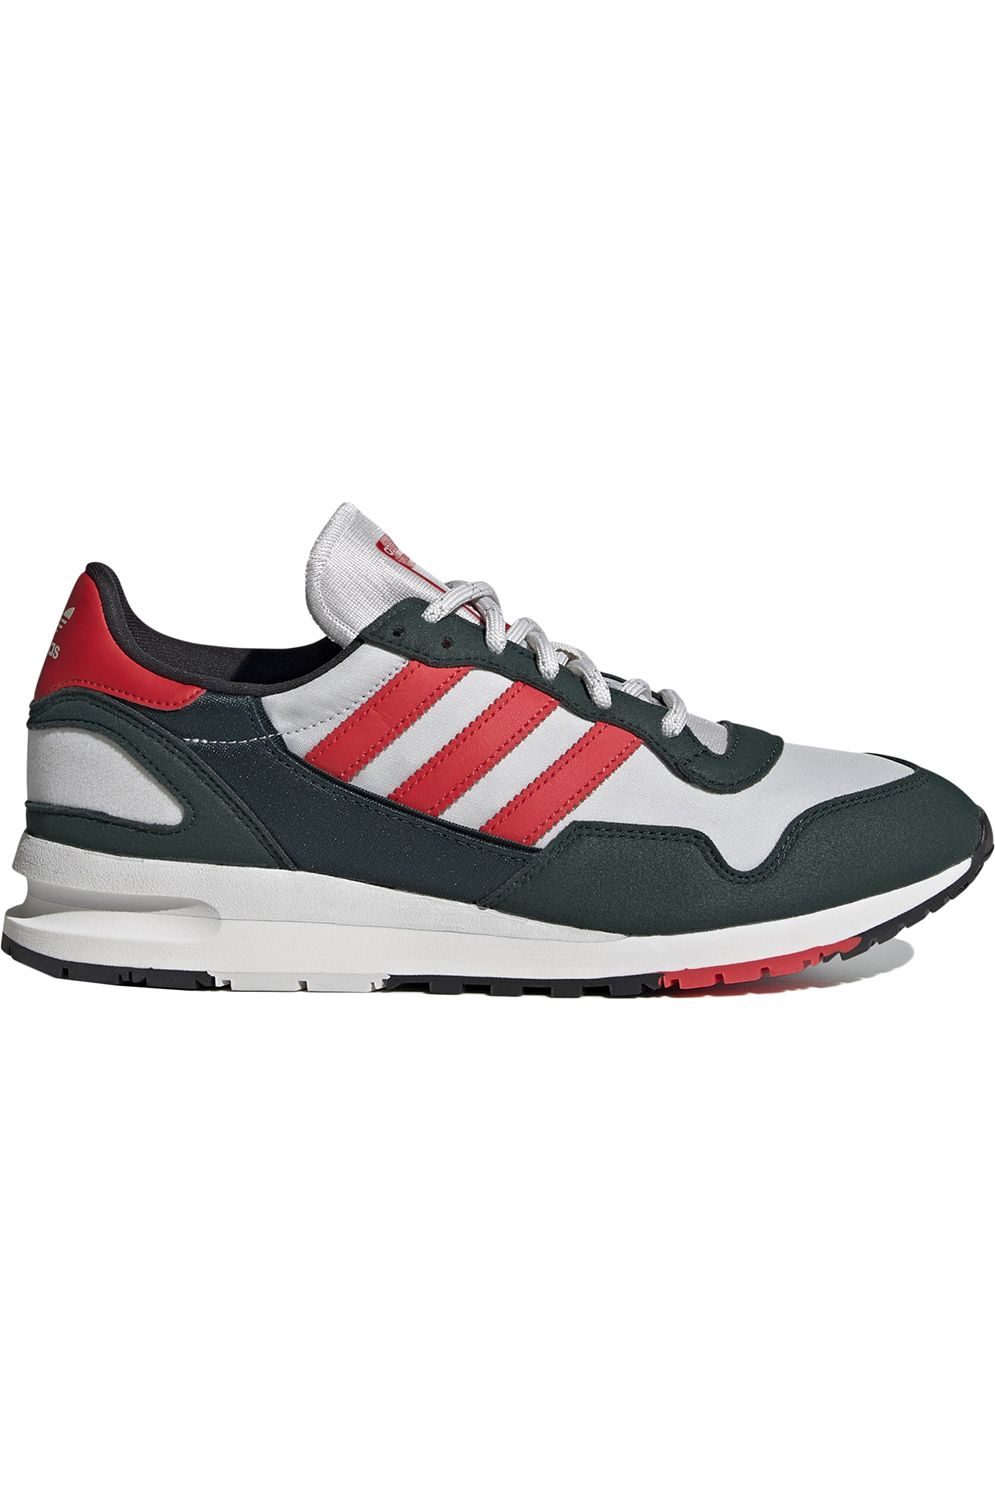 Adidas Shoes LOWERTREE Collegiate Green/Cherry Red/Grey One F17